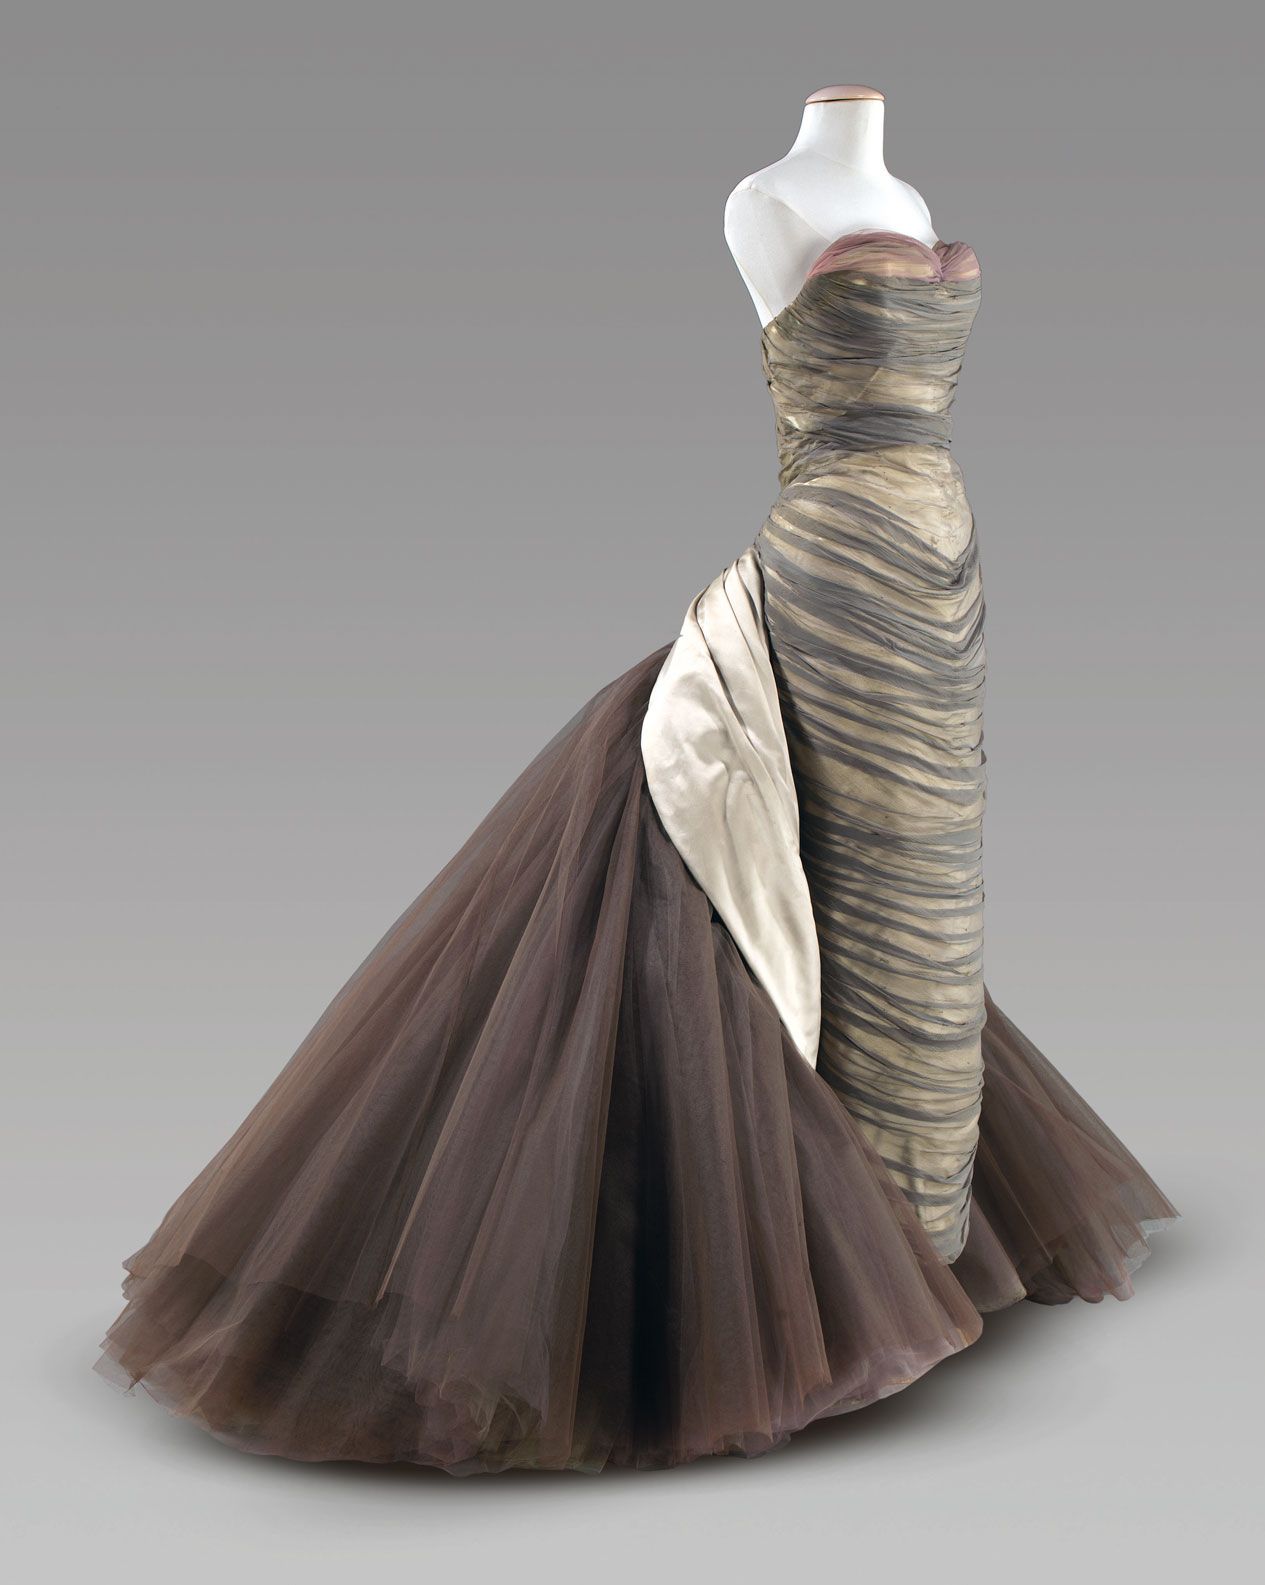 You love the 'Butterfly' (p.167, fig.7) by Charles James, a designer you're less familiar with than Dior or Chanel, and you follow the essay cross-reference in the expectation of learning more about him. From Art =